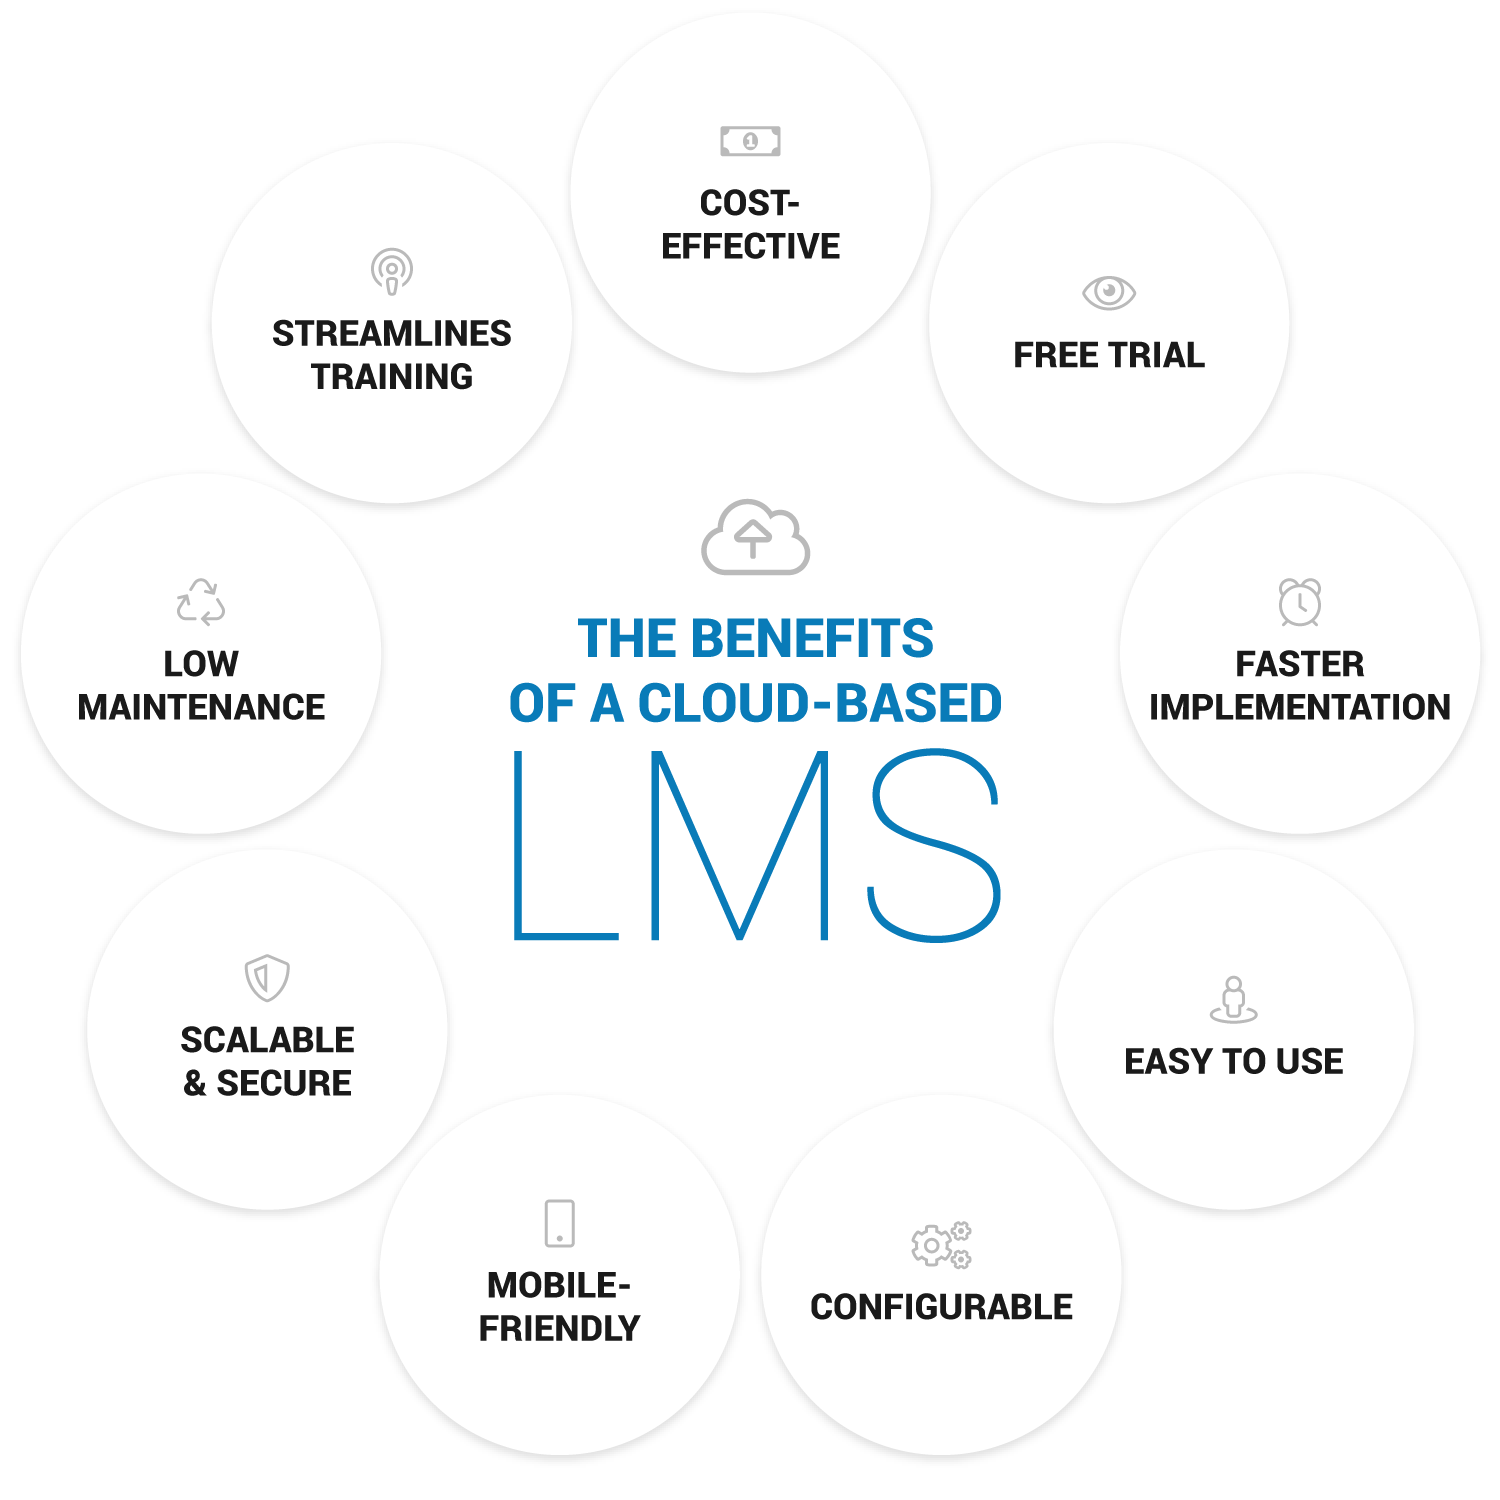 benefits of a cloud lms